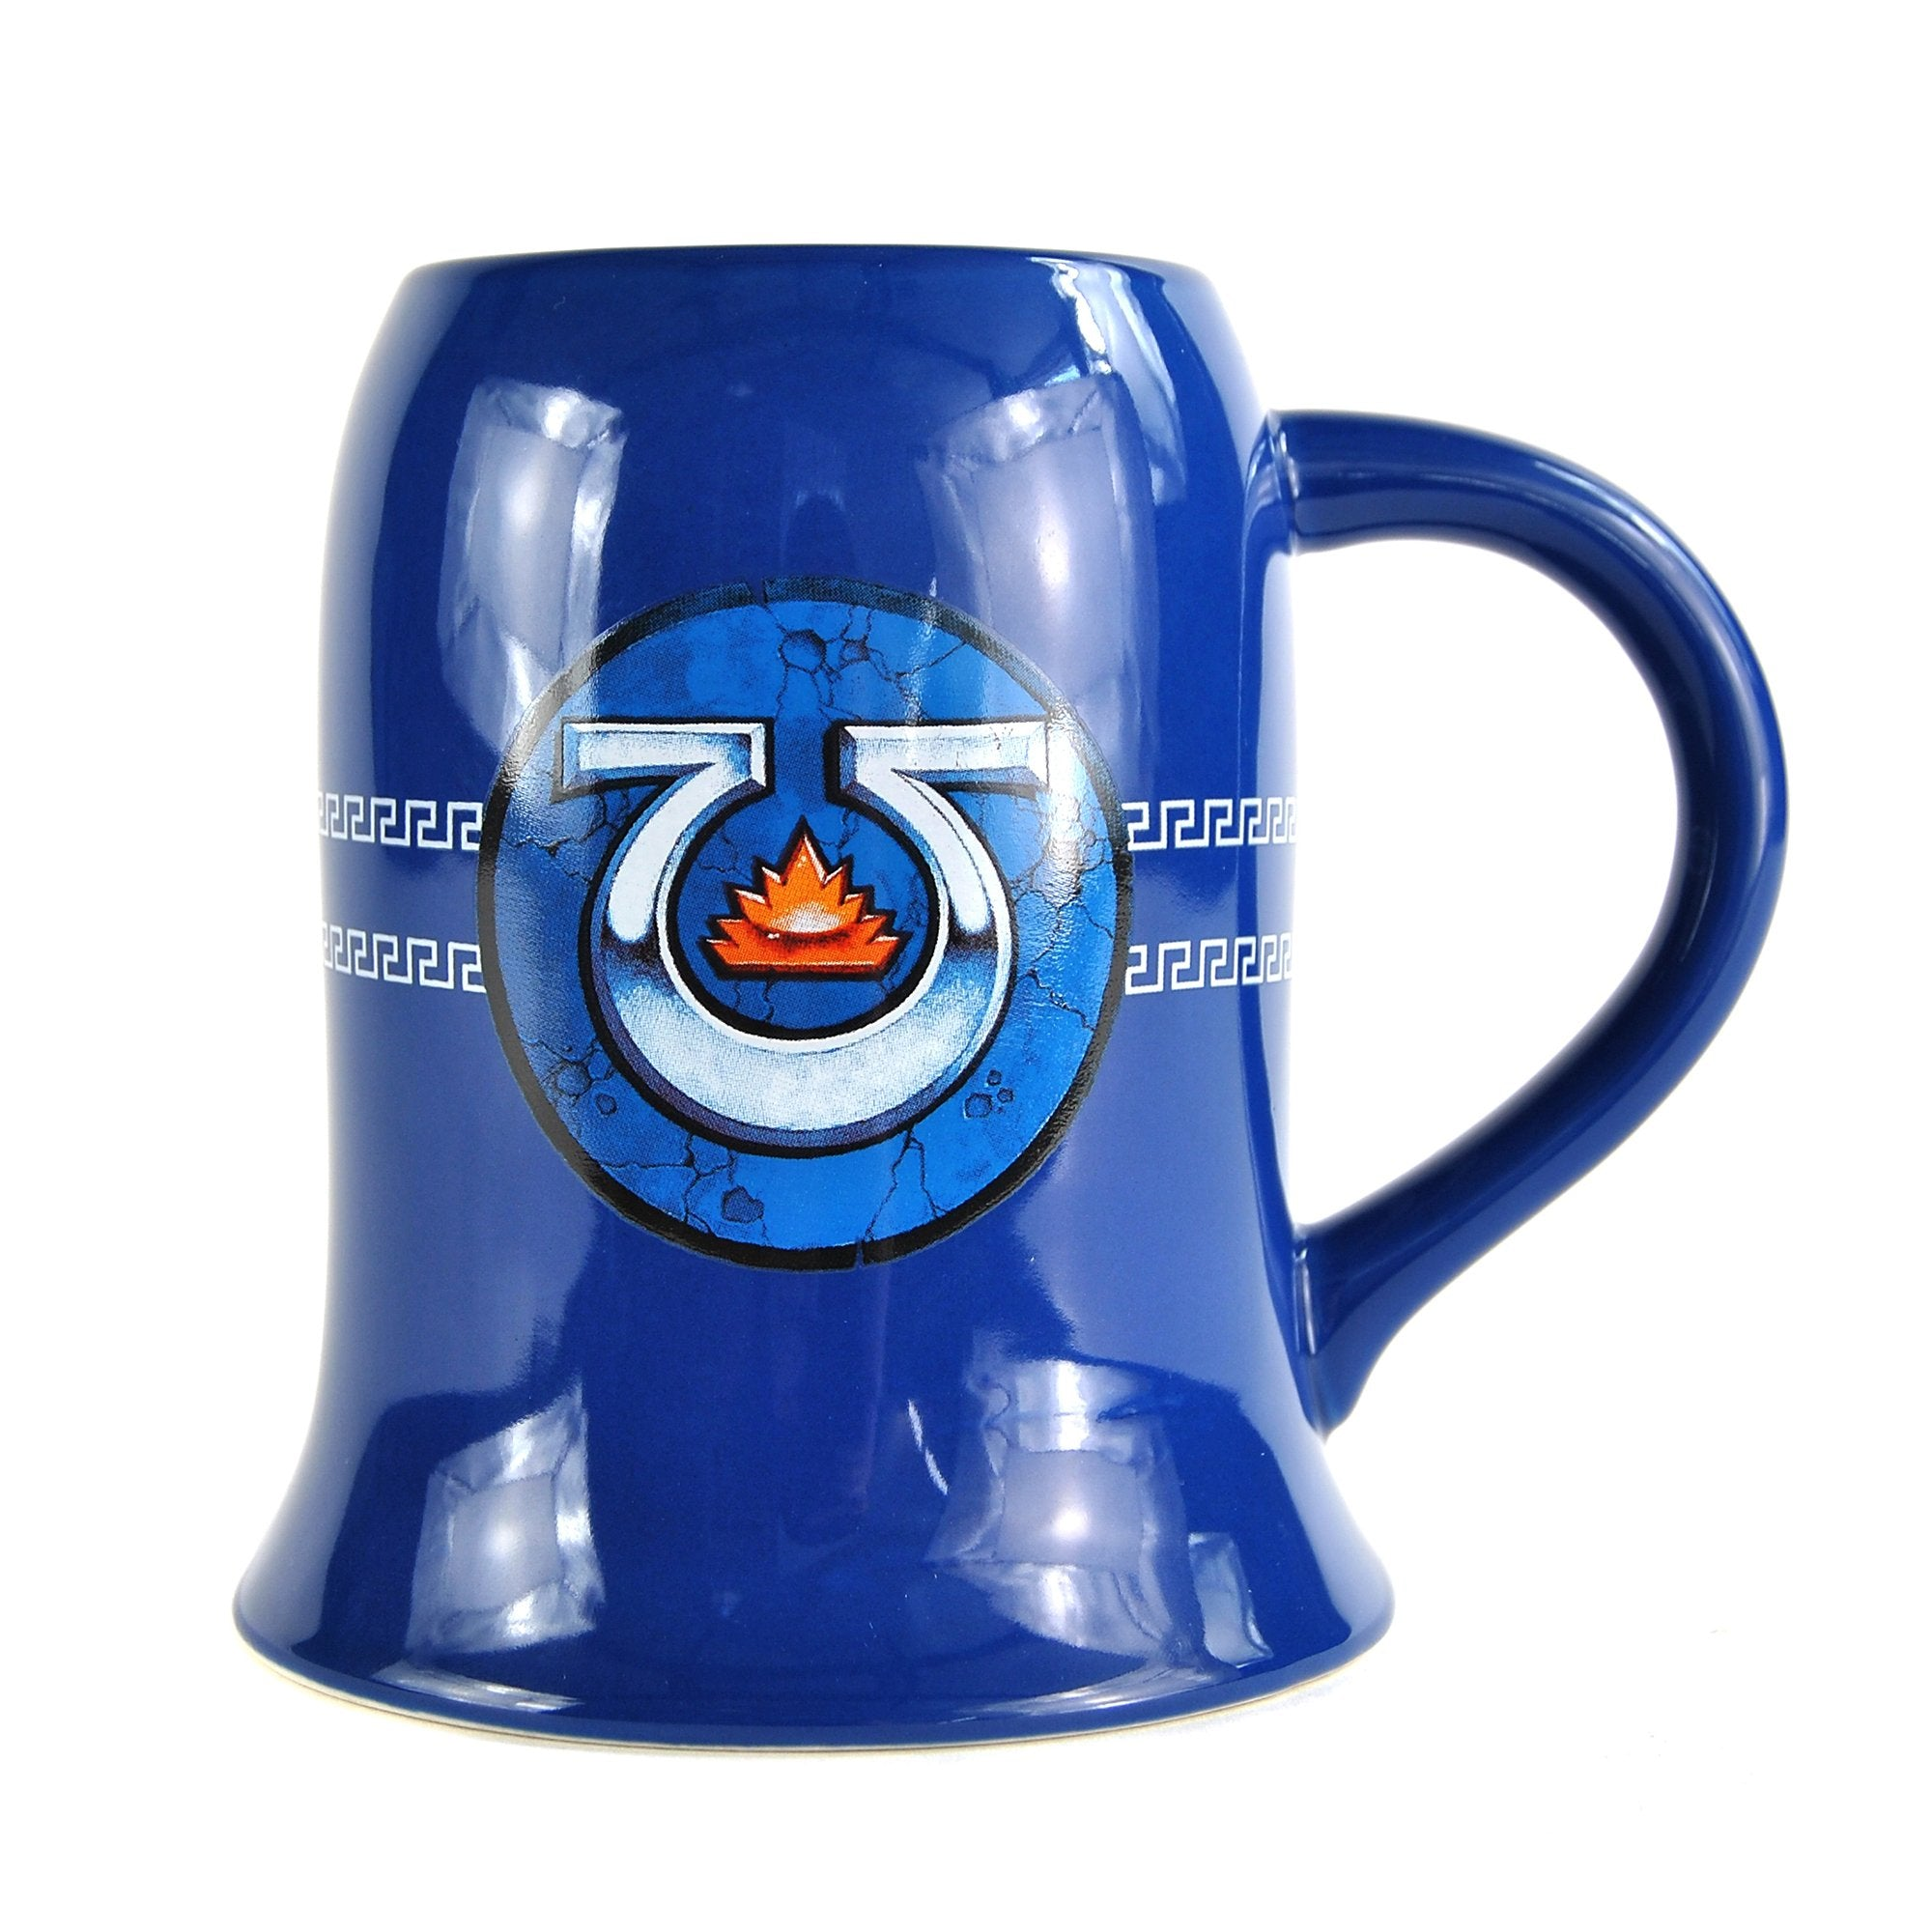 Warhammer 40,000 Tankard Mug - Ultramarines - Half Moon Bay US